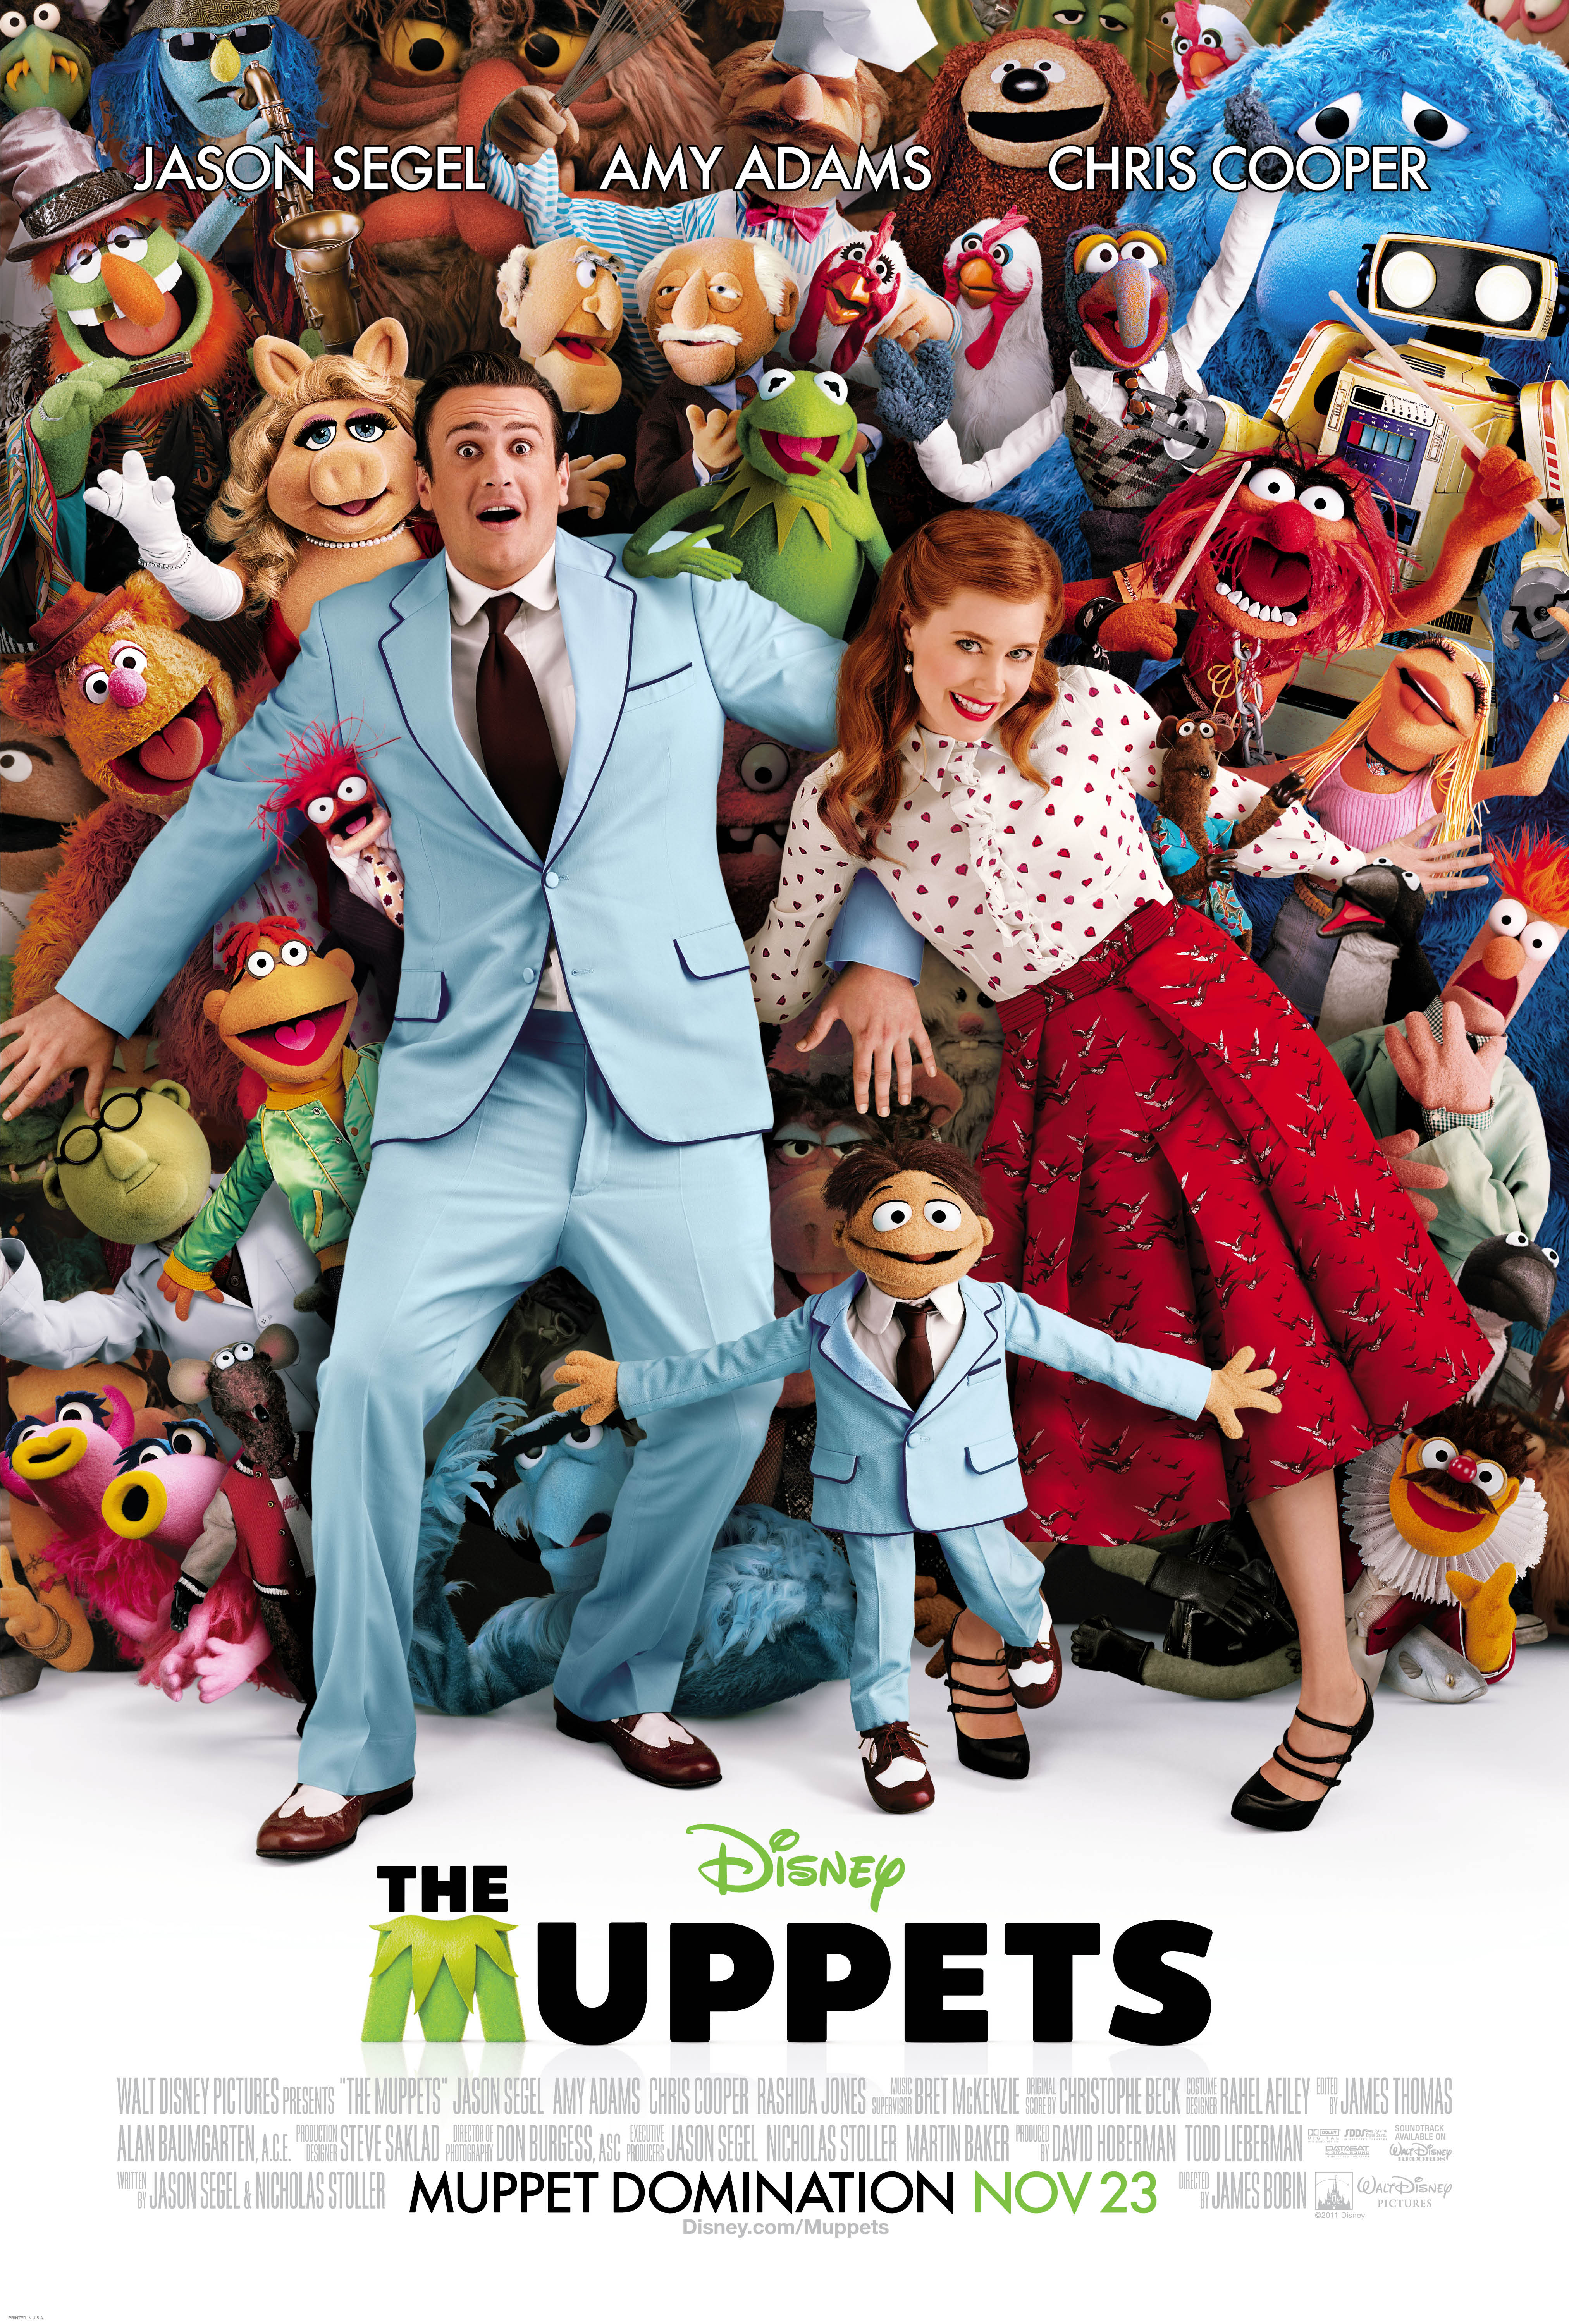 File:The Muppets.jpg